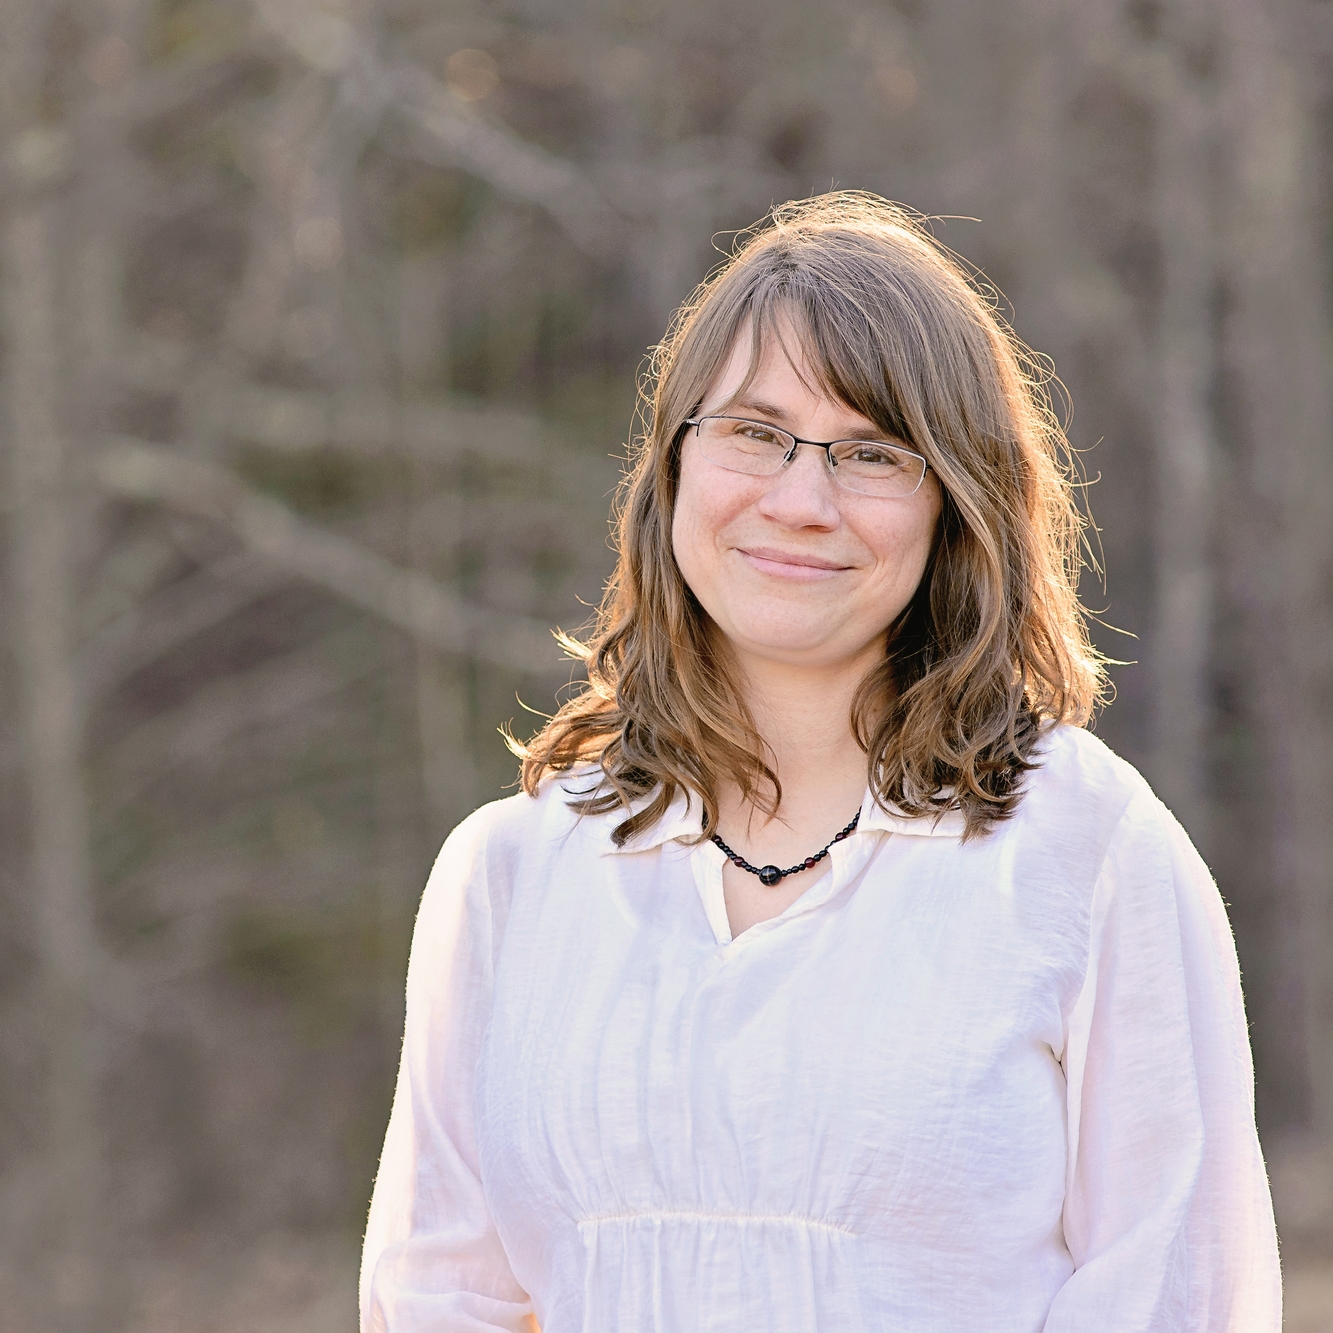 Jennifer Noel, LCSW, has worked as a psychotherapist for over twenty years, and is currently a psychology instructor. She is also a lifelong writer of diaries, essays, fiction and memoir. She welcomes participants at Room to Write locally (Southern and Midcoast Maine) and remotely.